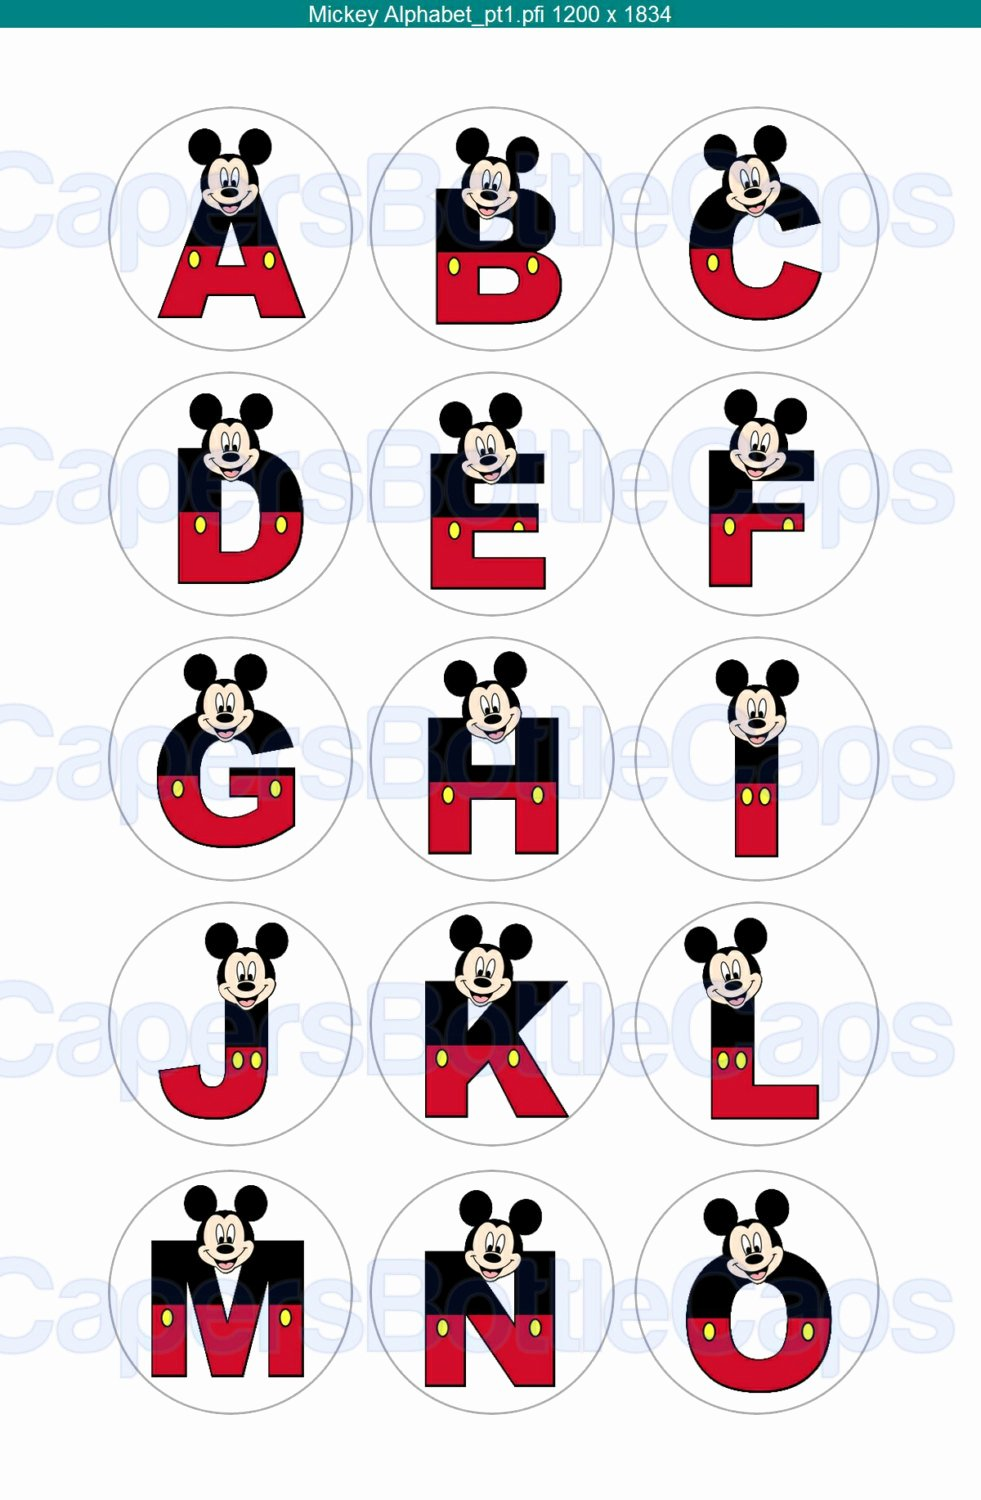 Mickey Mouse Alphabet Letters New Mickey Mouse Alphabet Bottlecap Collage Sheet by